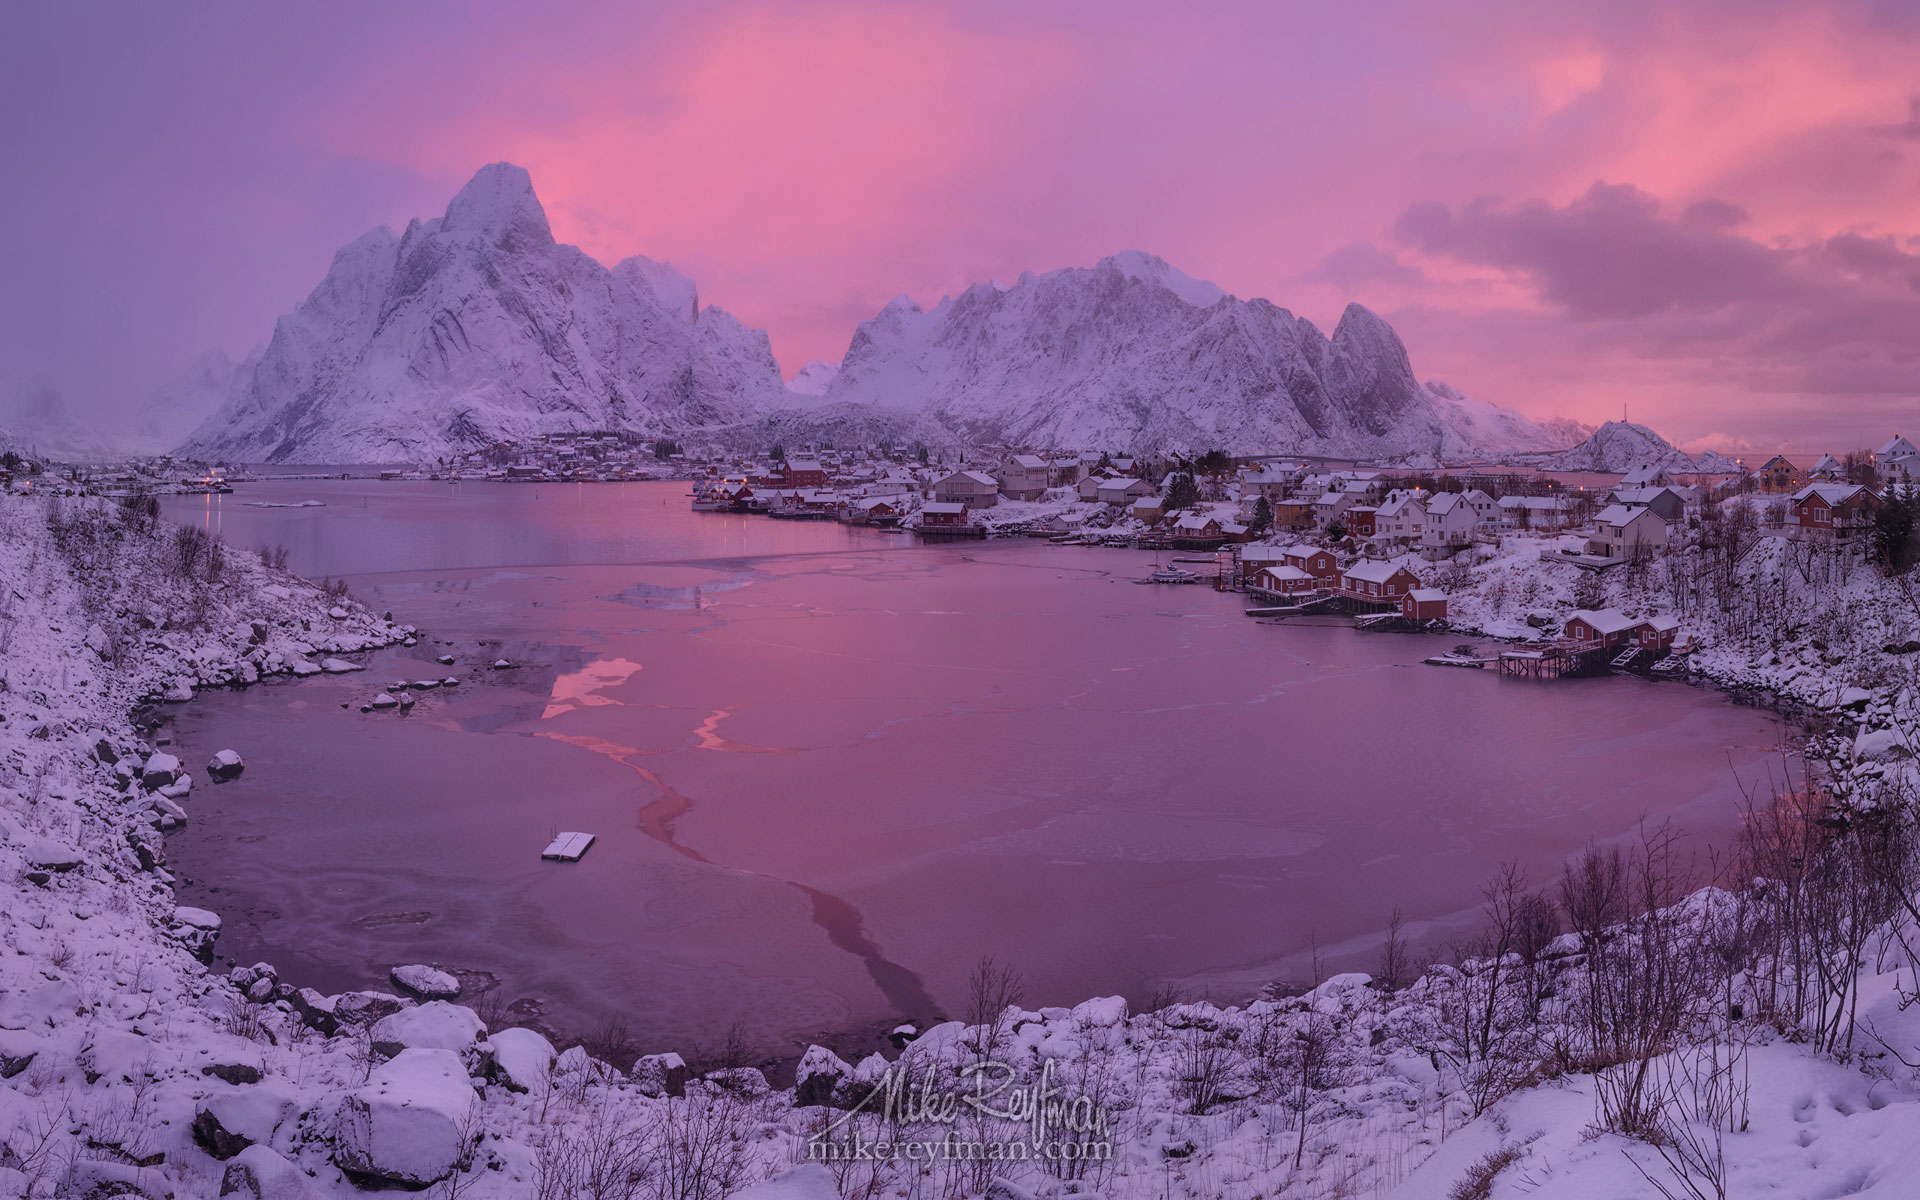 LF-MRD1E0840-46 - Lofoten Archipelago in Winter, Arctic Norway - Mike Reyfman Photography